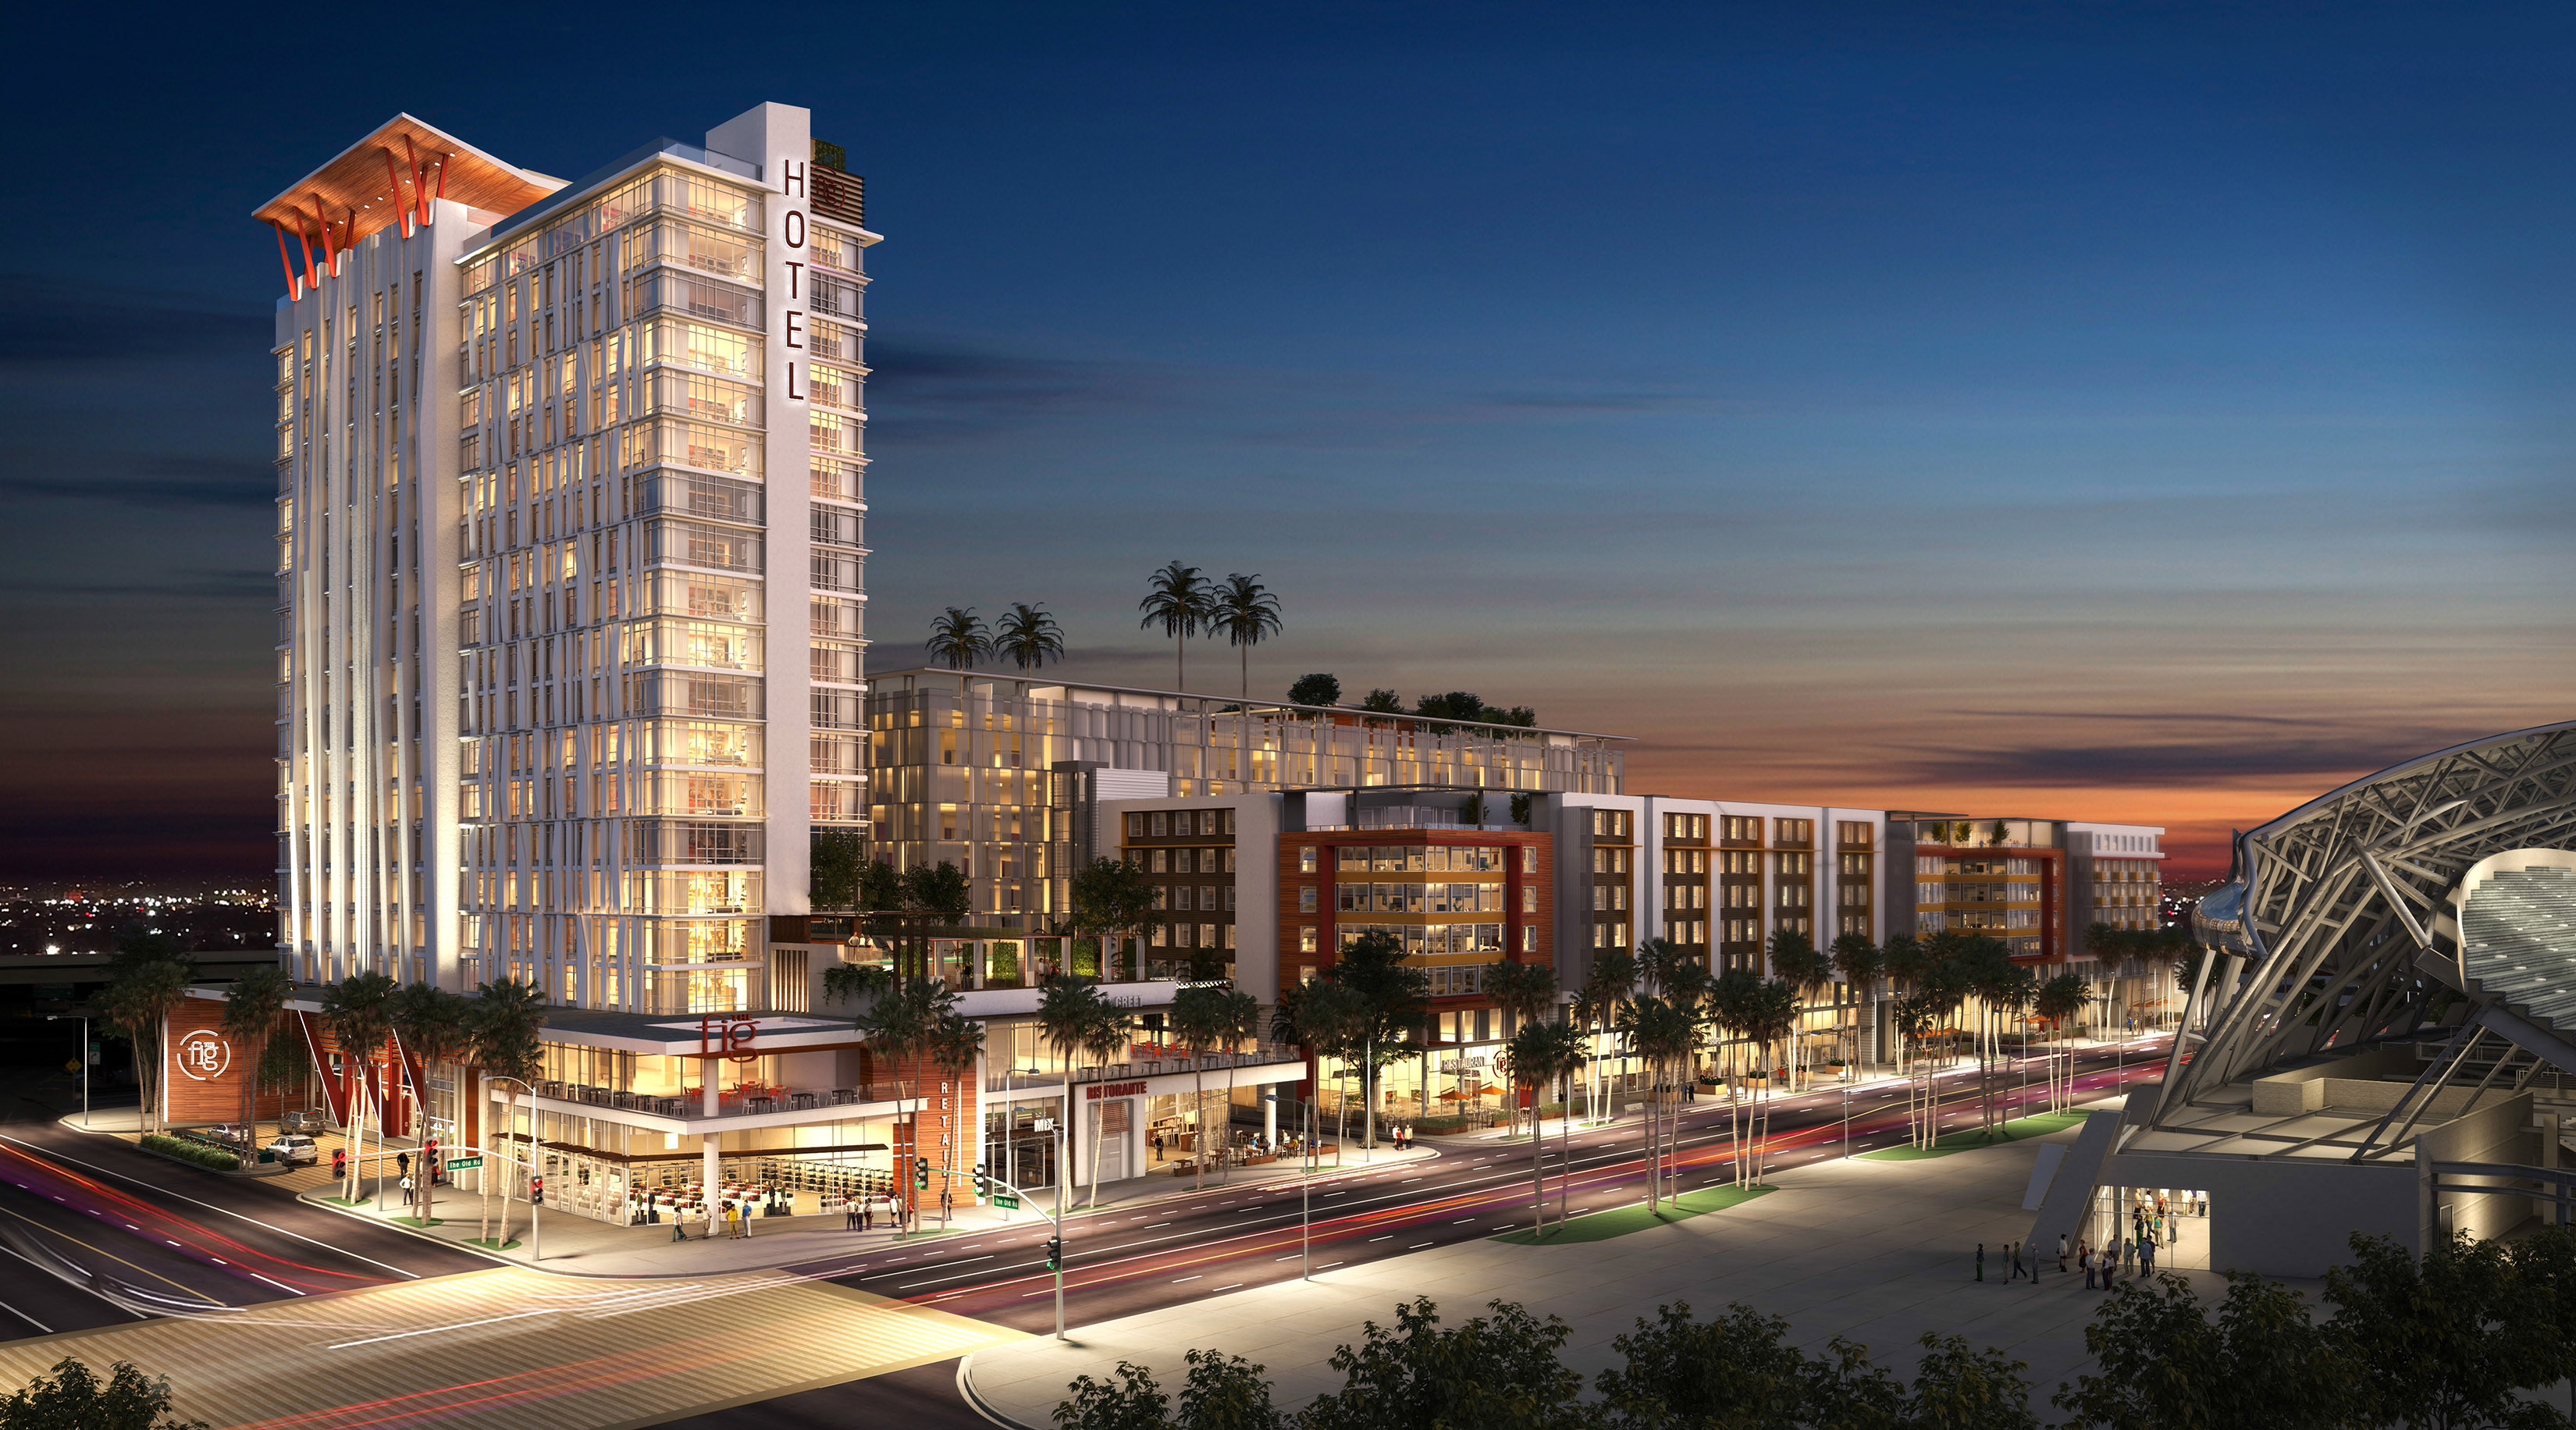 Plans for a 21-story tower dropped from massive Figueroa Street project